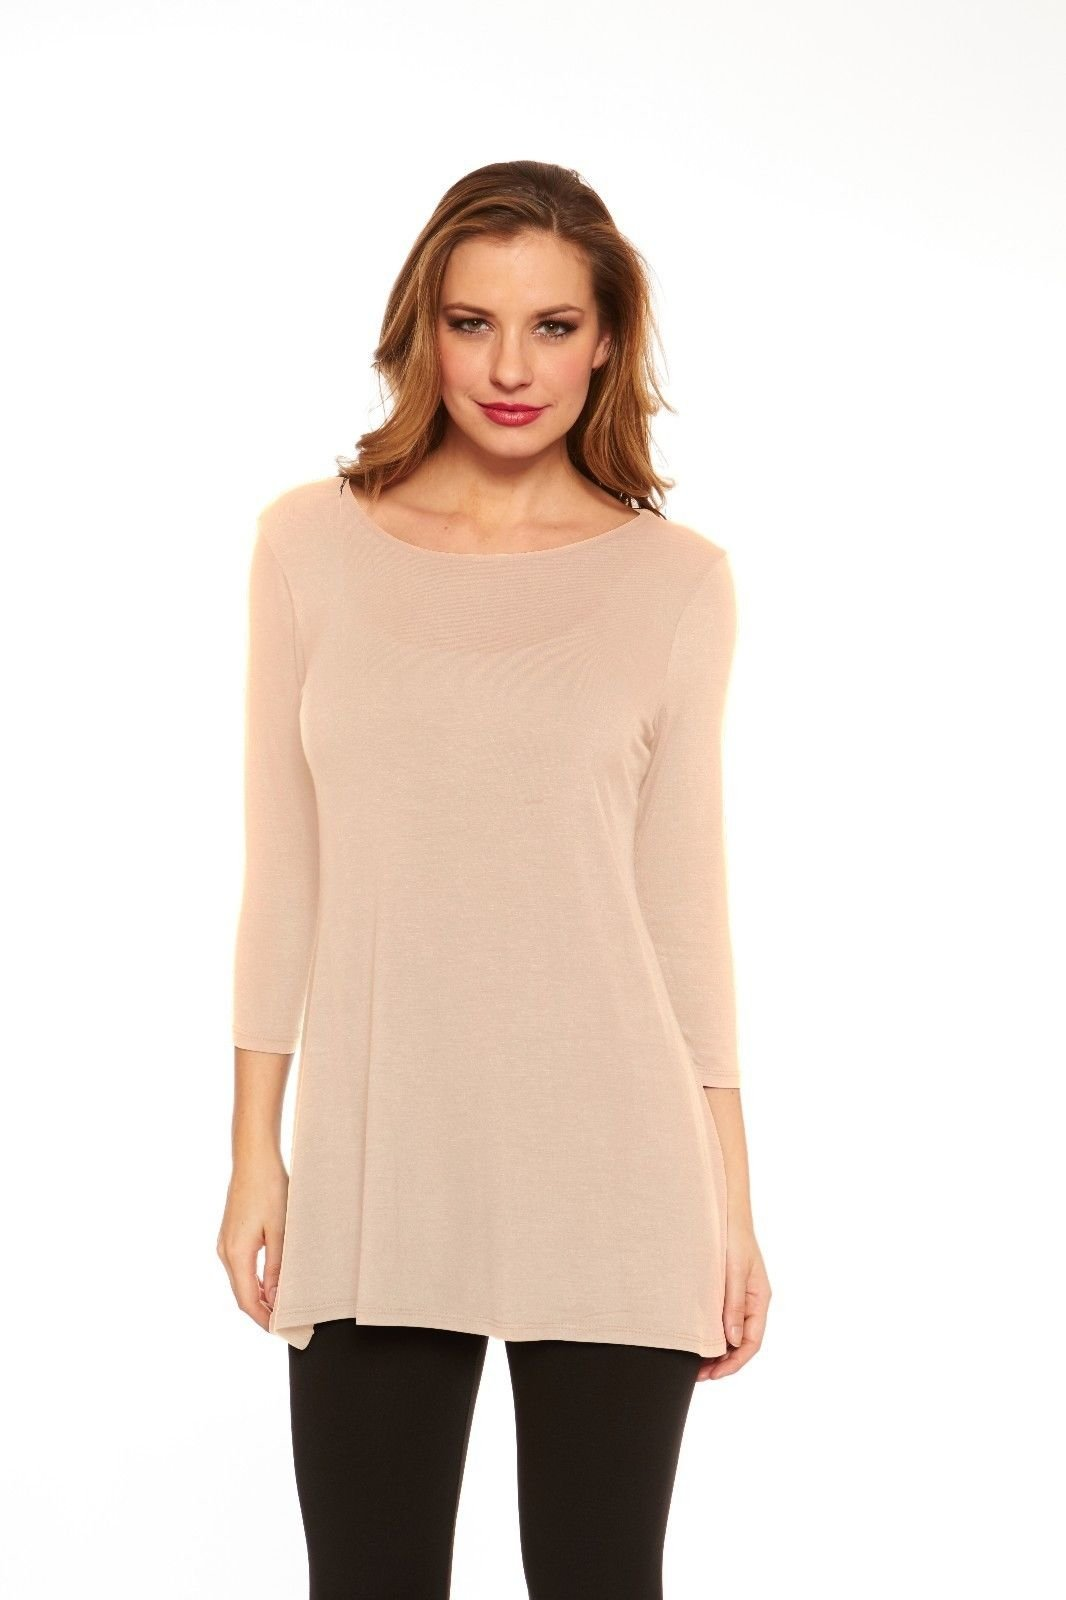 Womens Tunic Top Elbow Sleeves Solid Wide Neck Flowy